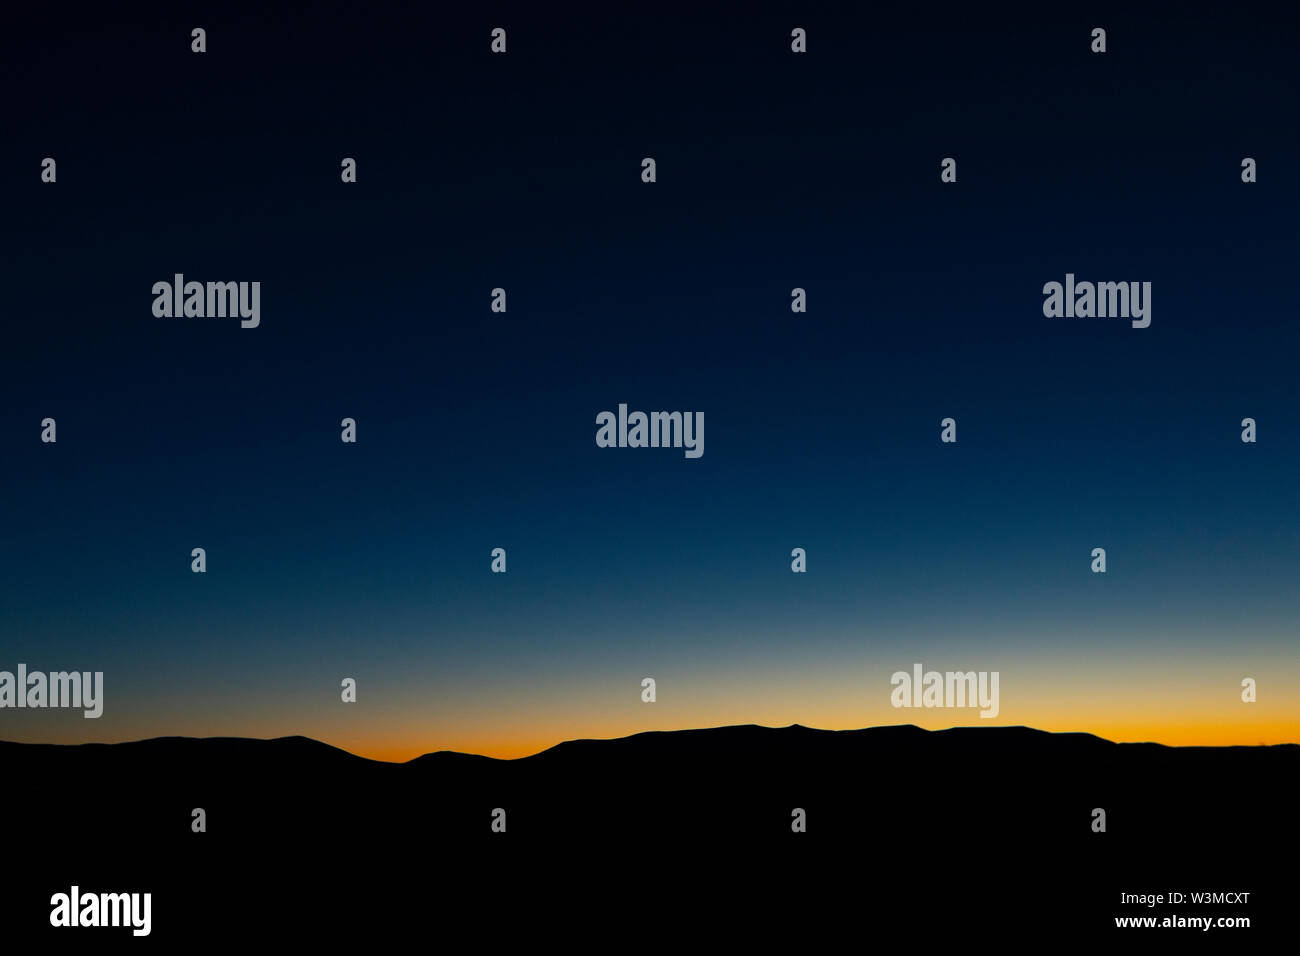 Silhouette of mountains at sunset - Stock Image